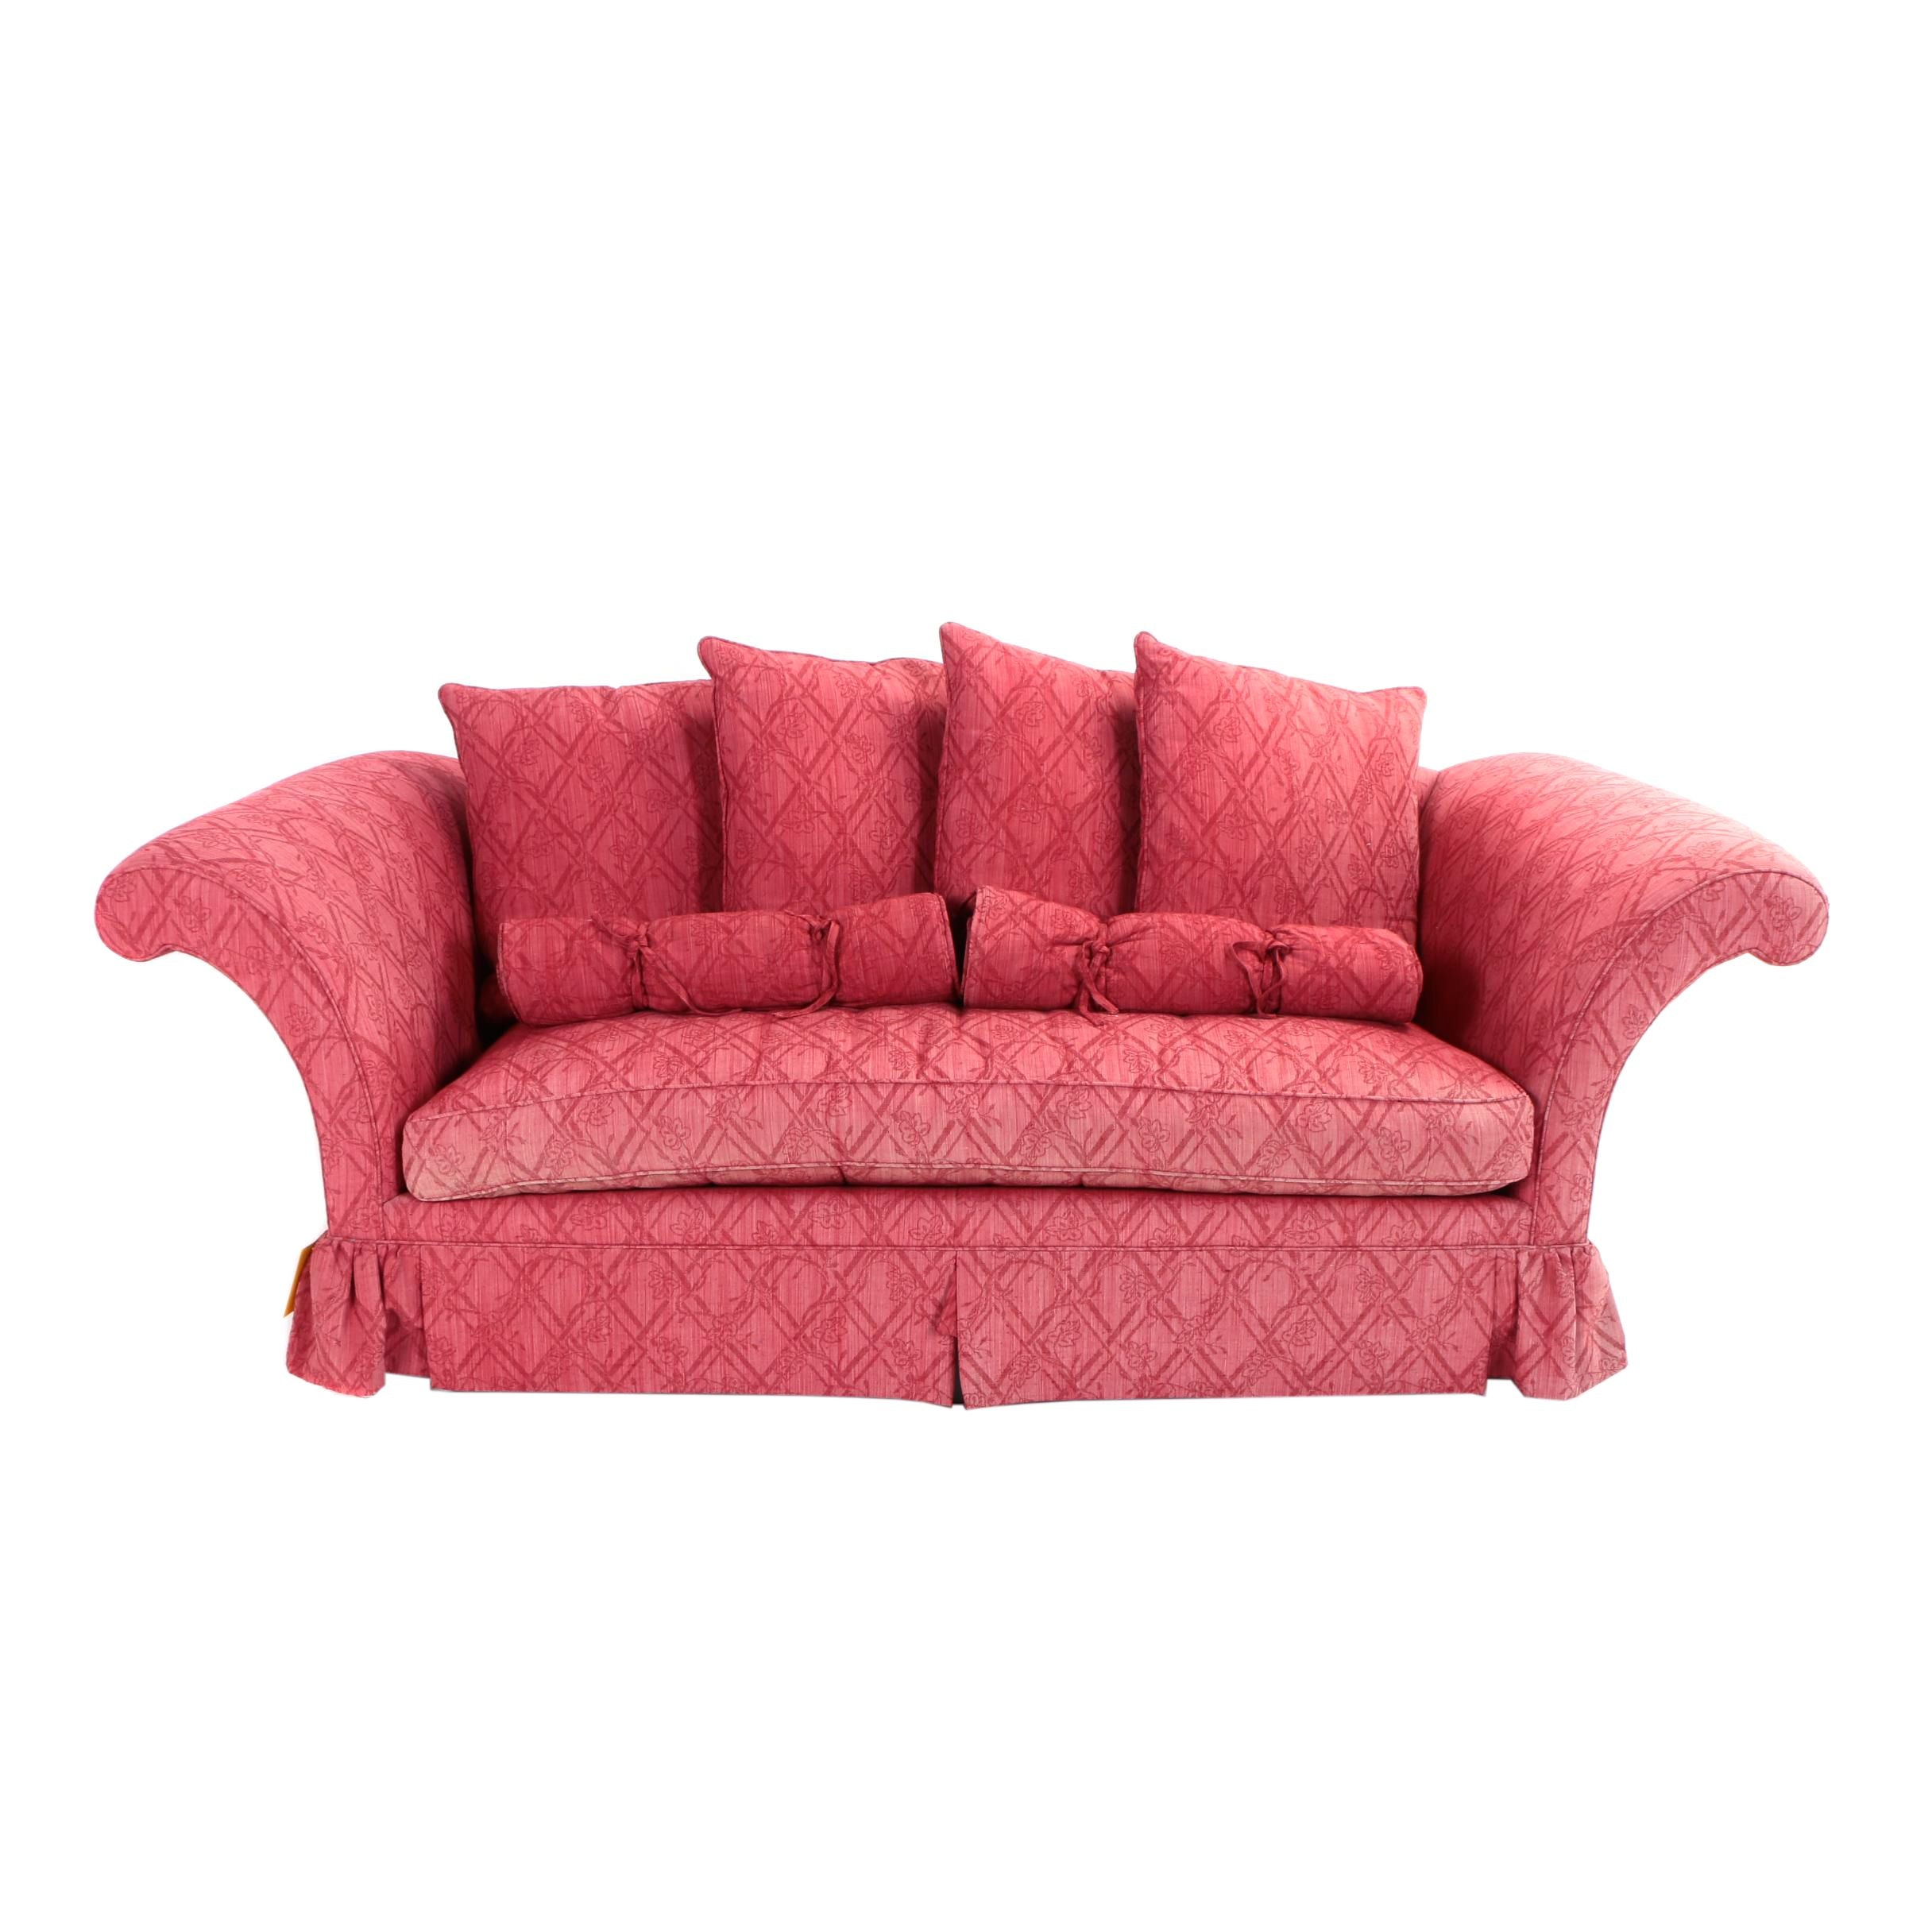 "Baker Furniture, ""Crown & Tulip Collection"" Sofa, Late 20th Century"